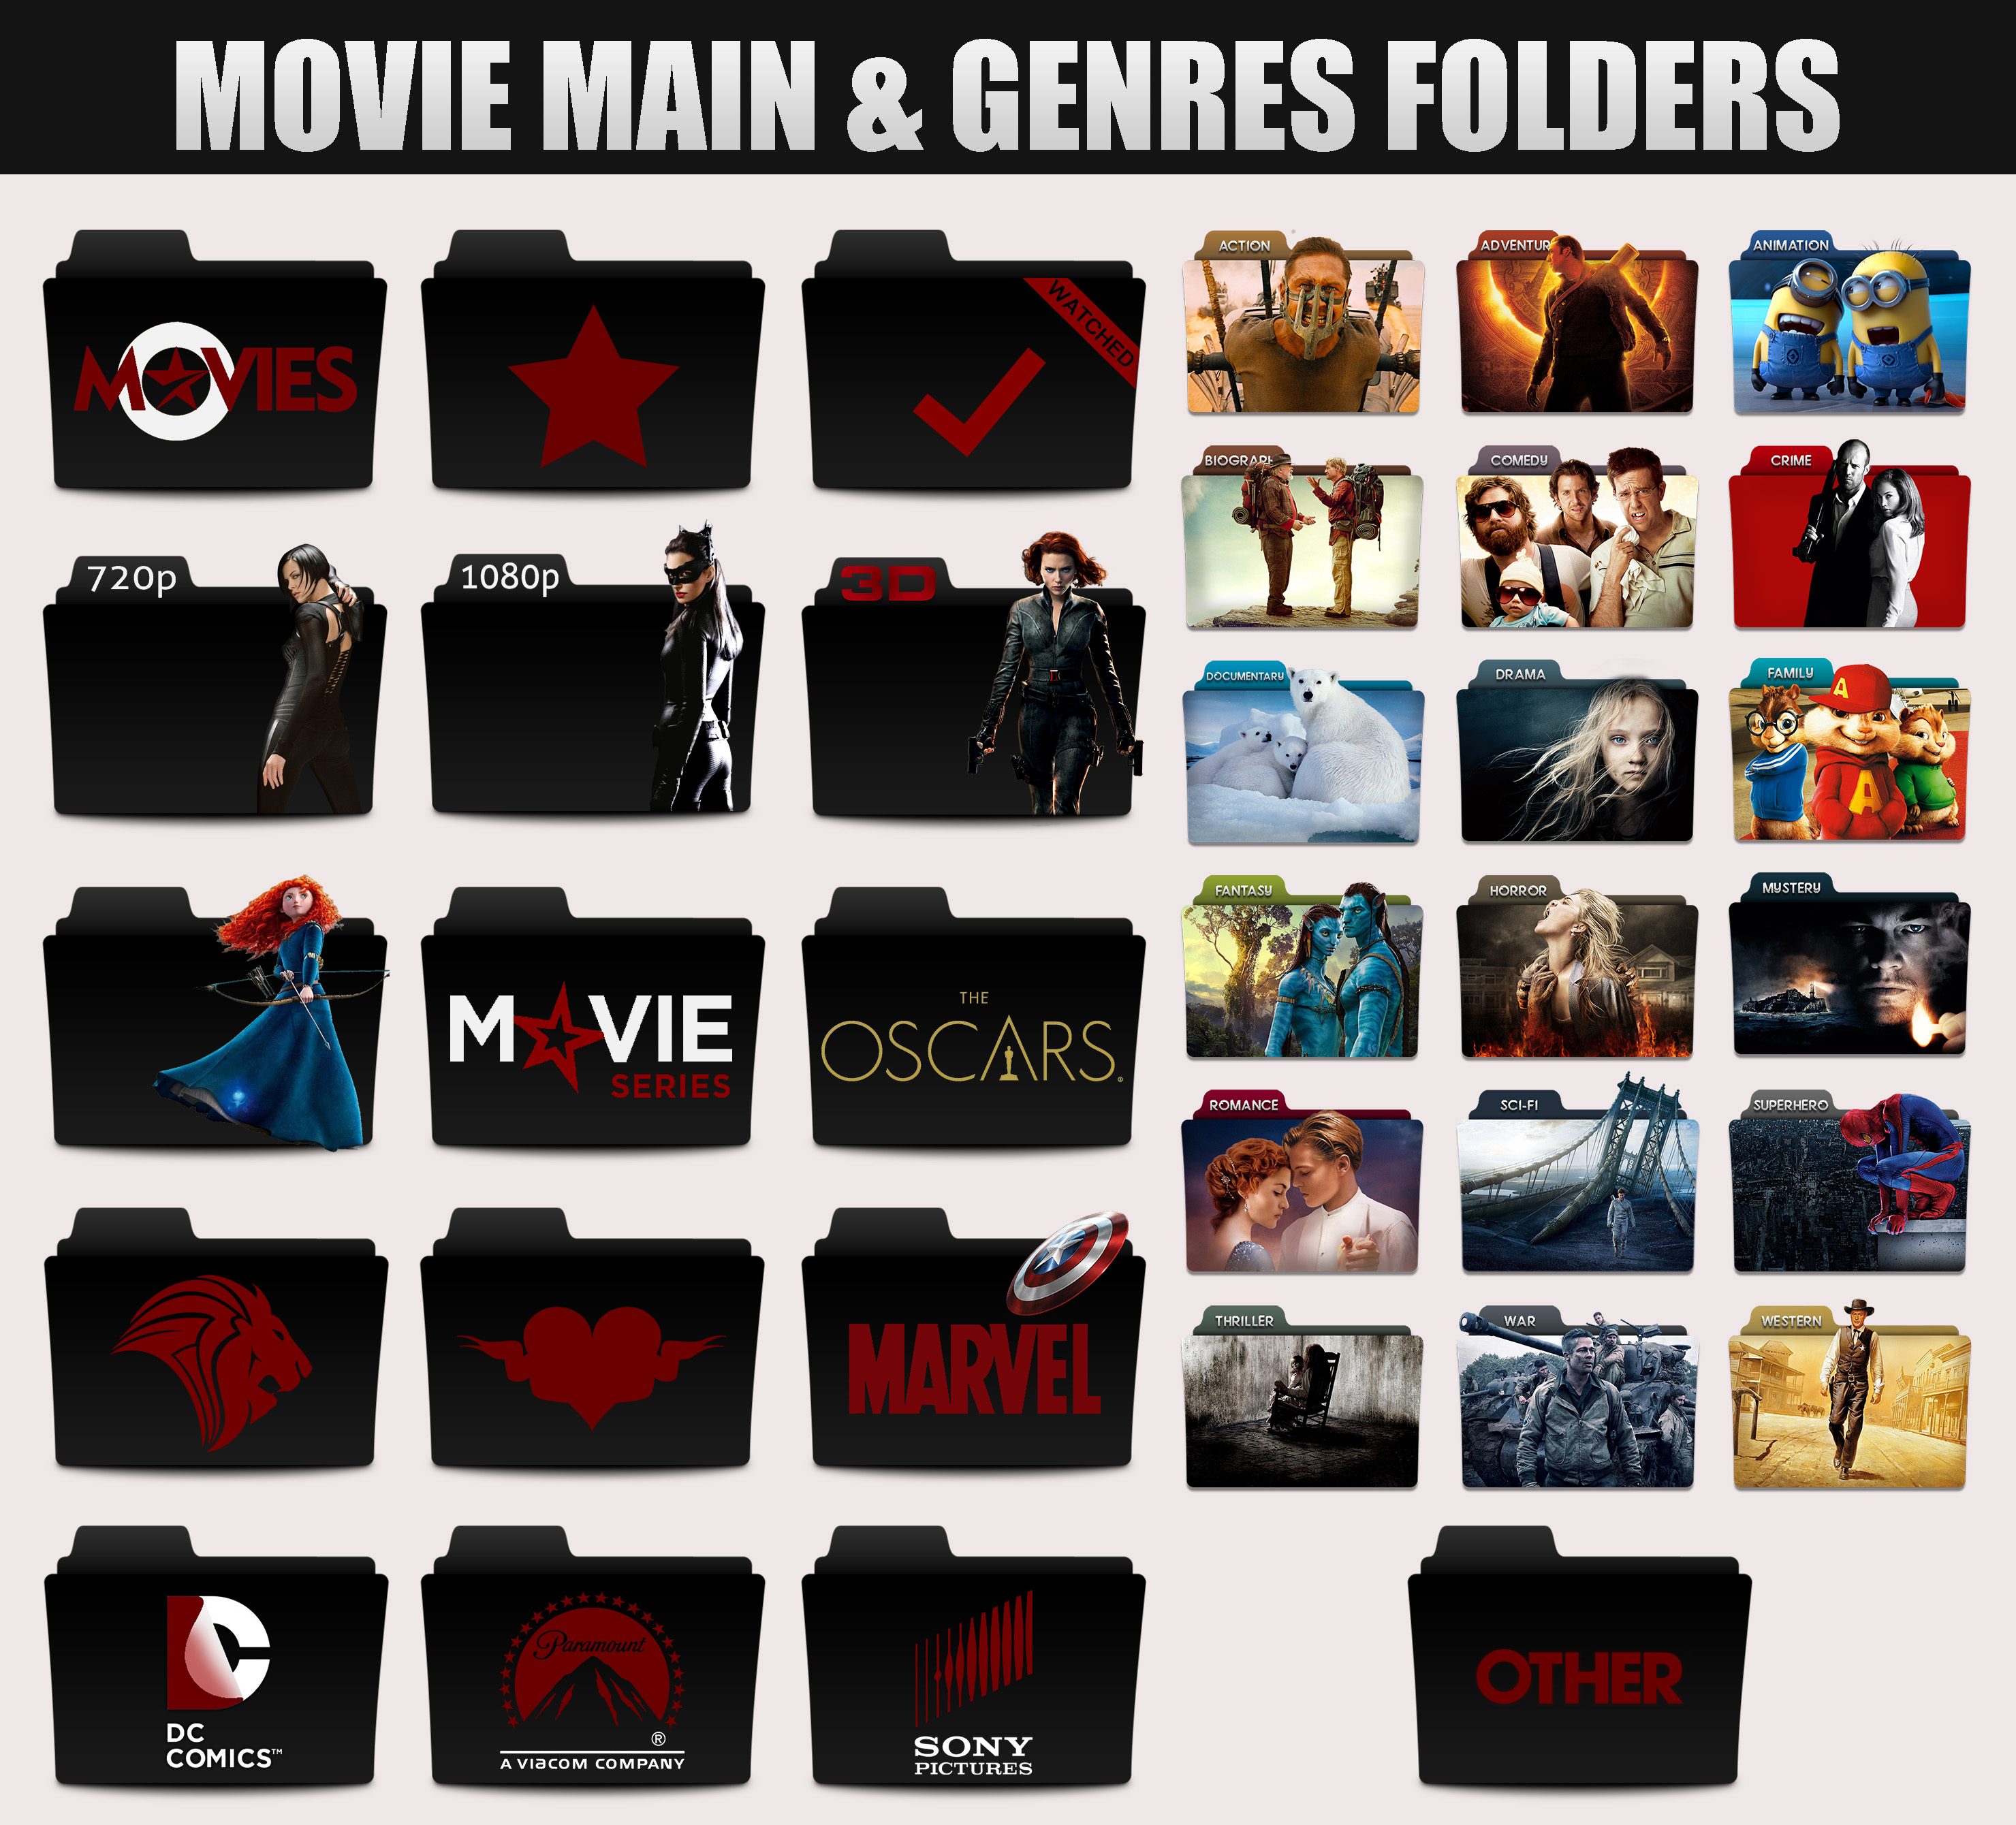 Movie Genres Folders By Sonerbyzt Movie Genres Folders By Sonerbyzt